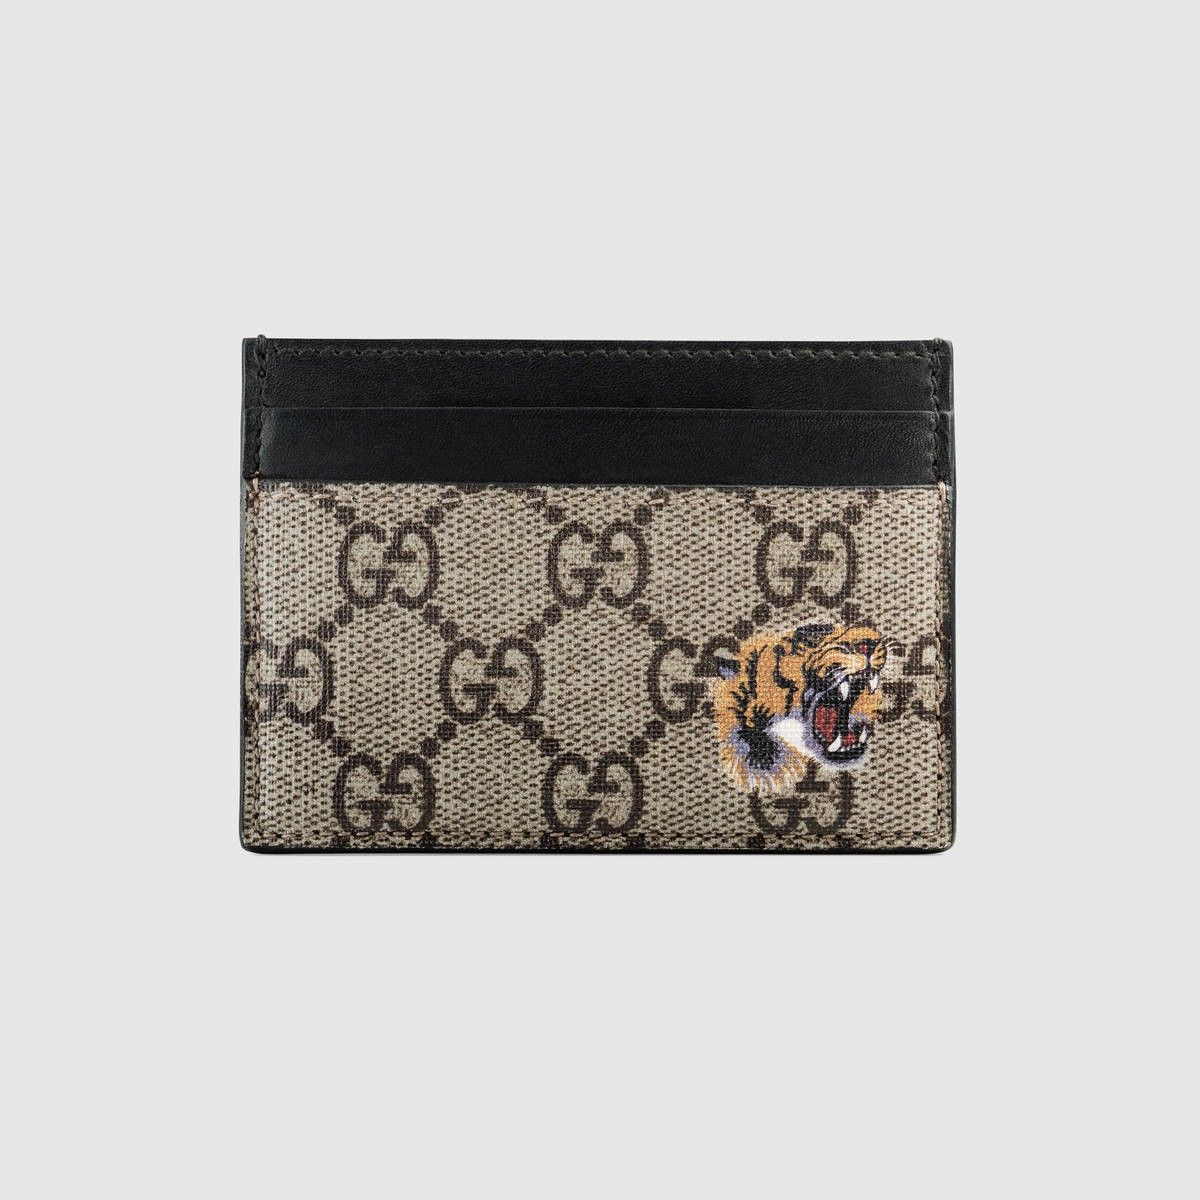 24a7cf5b8e9 GUCCI Tiger Print Gg Supreme Card Case - Gg Supreme.  gucci  all ...